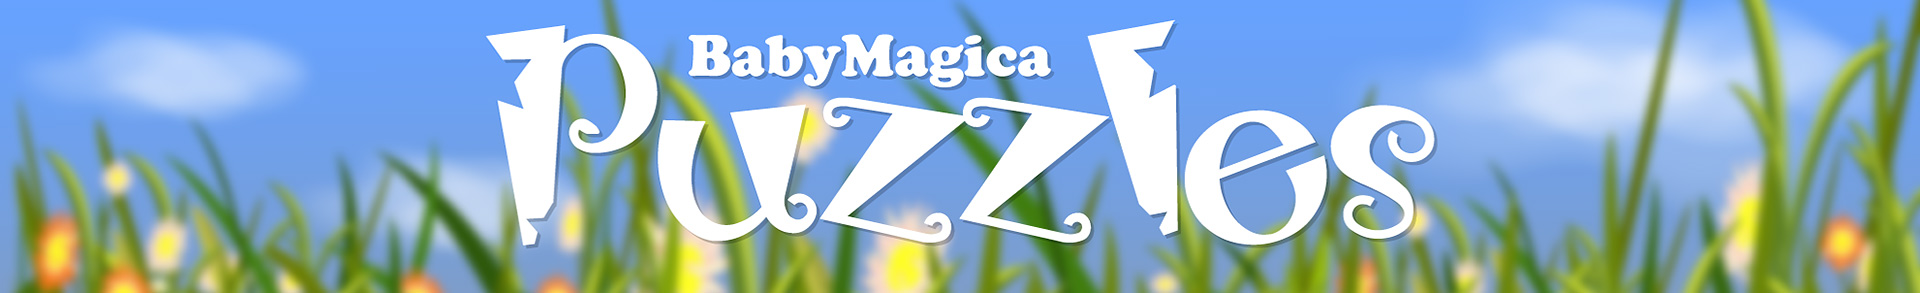 BabyMagica: Puzzles